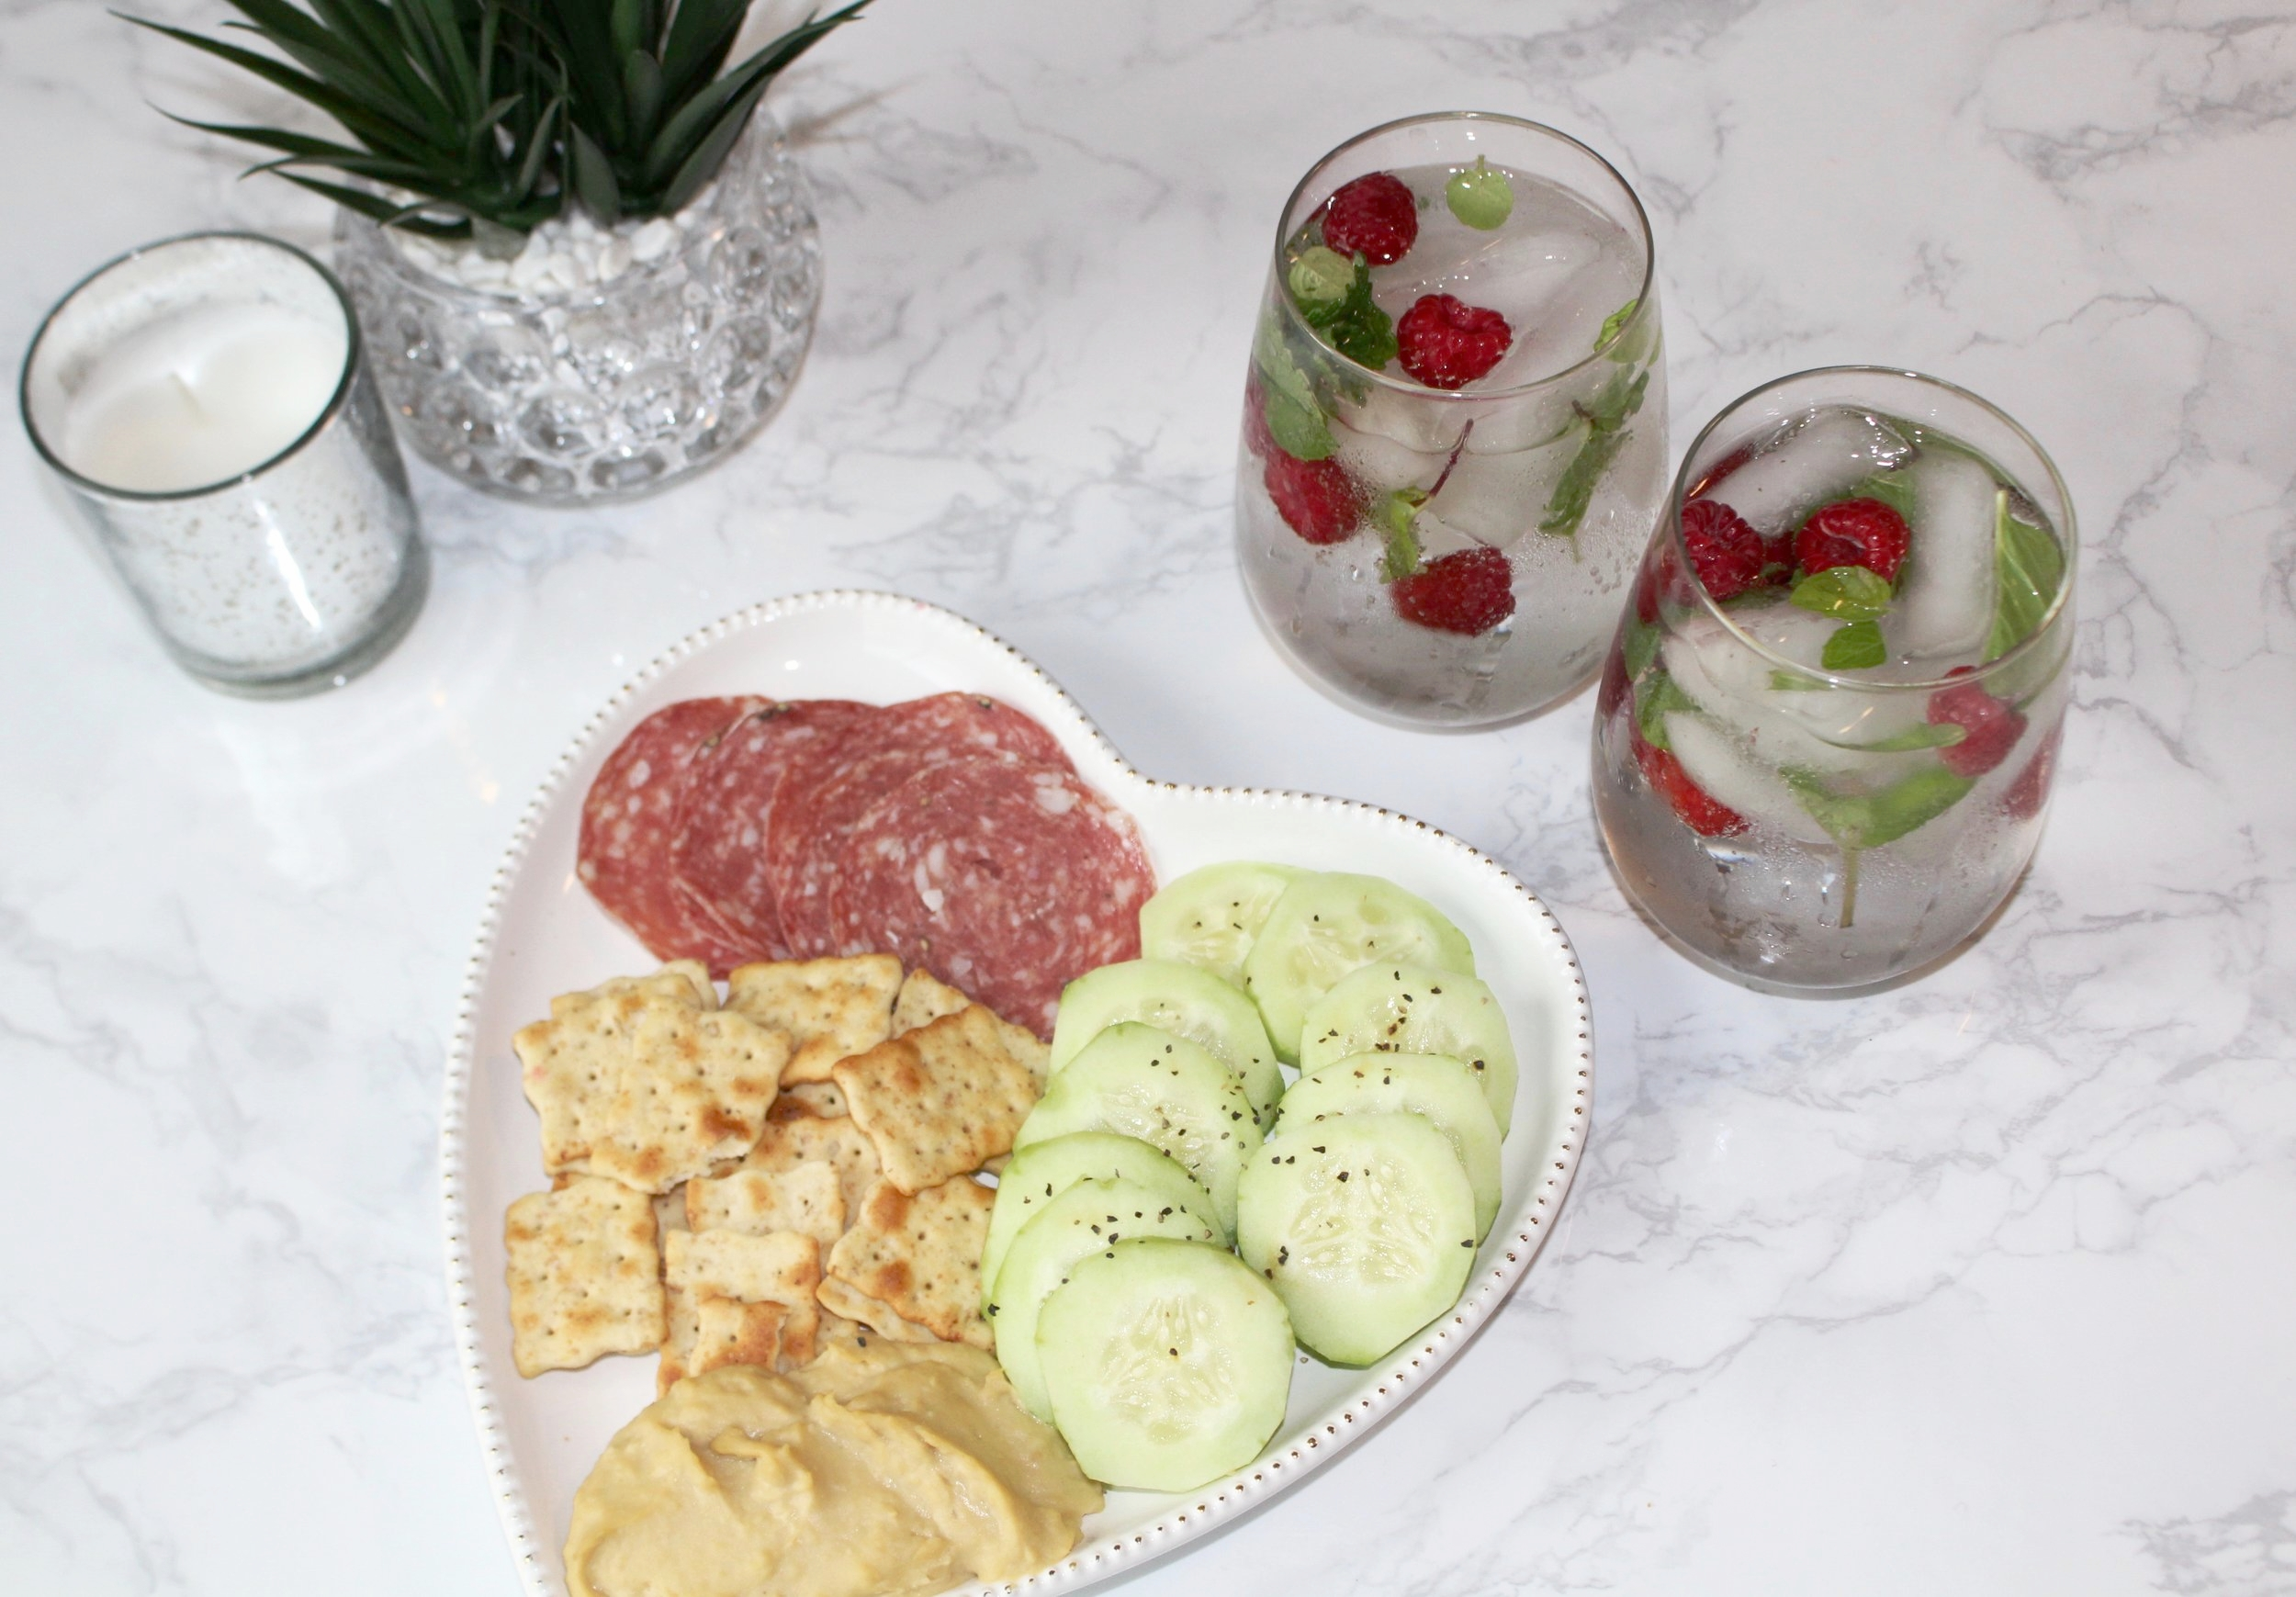 honestlysarcastic,valentinesday,happyvalentinesday,love,cocktail,lovecocktail,healthyeating,healthyliving,loveyourself,cheerstolove,cucumber,raspberry,lime,sparklinglime,cucumbervodka,mint,organic,heart,heartplate,snacks,appetizers,cheers,drinks,celebrate,selflove